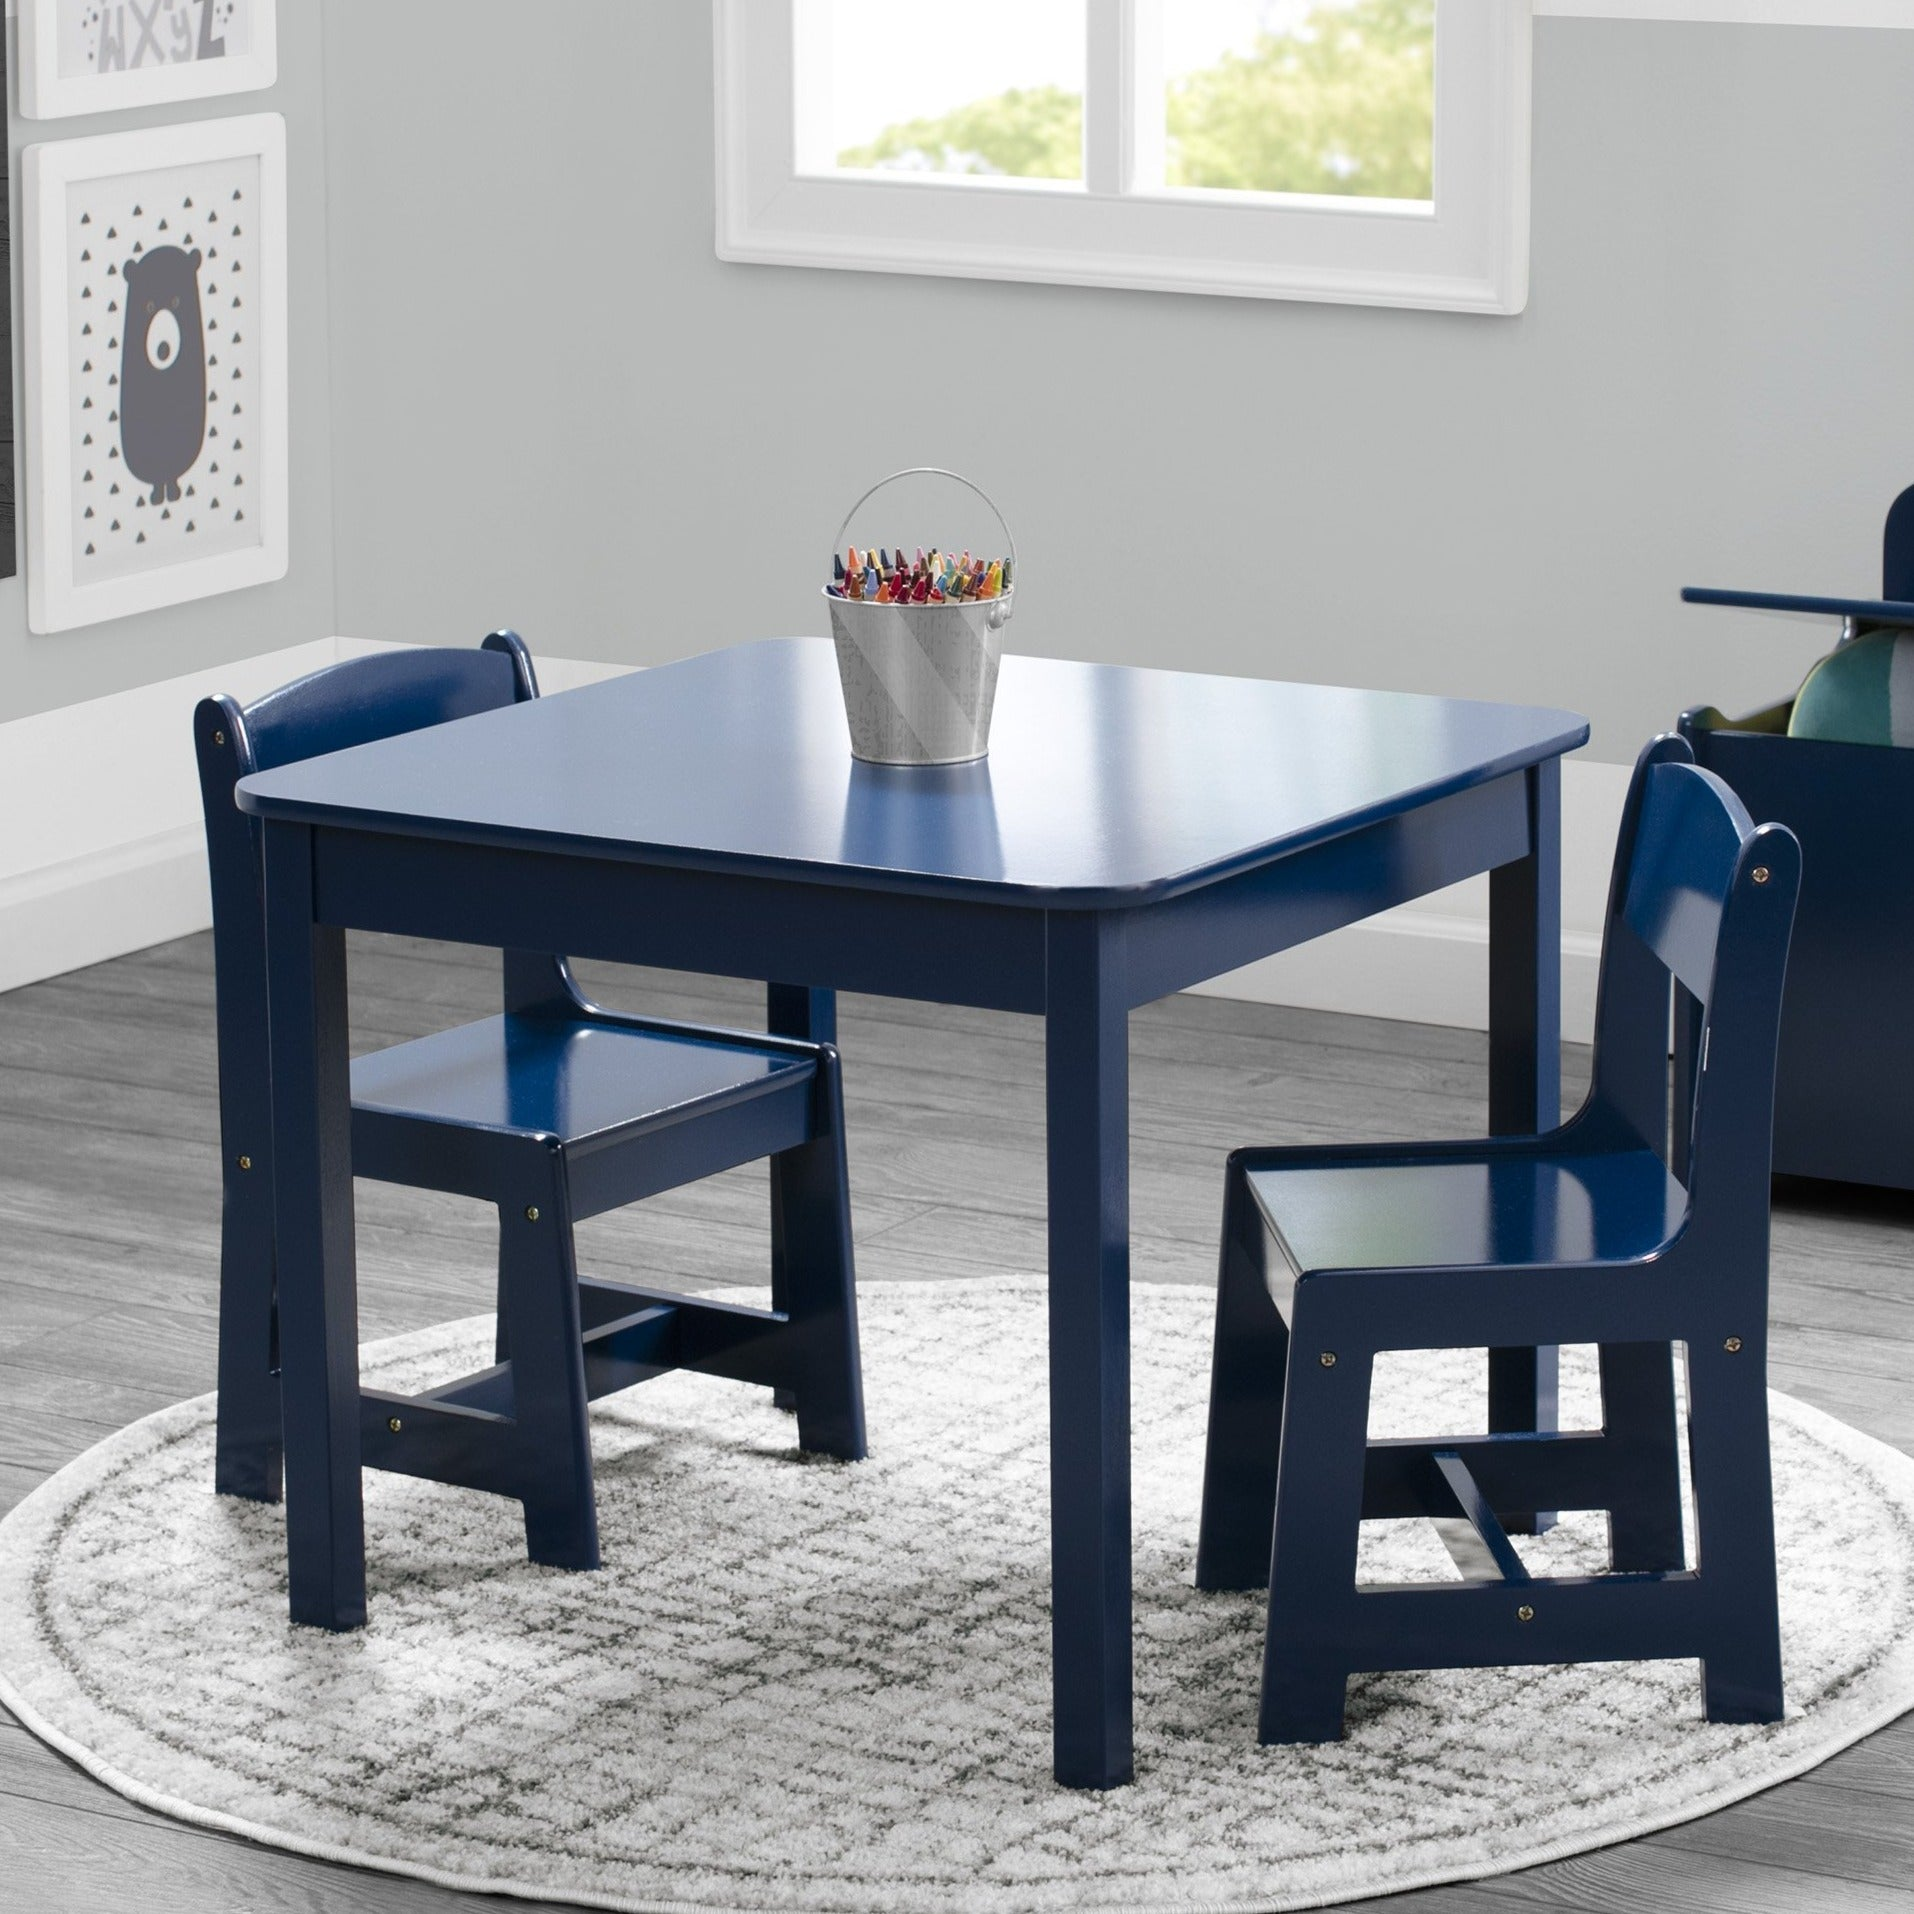 Delta Children Deep Blue 295C MySize Table & Chairs Set, Room View